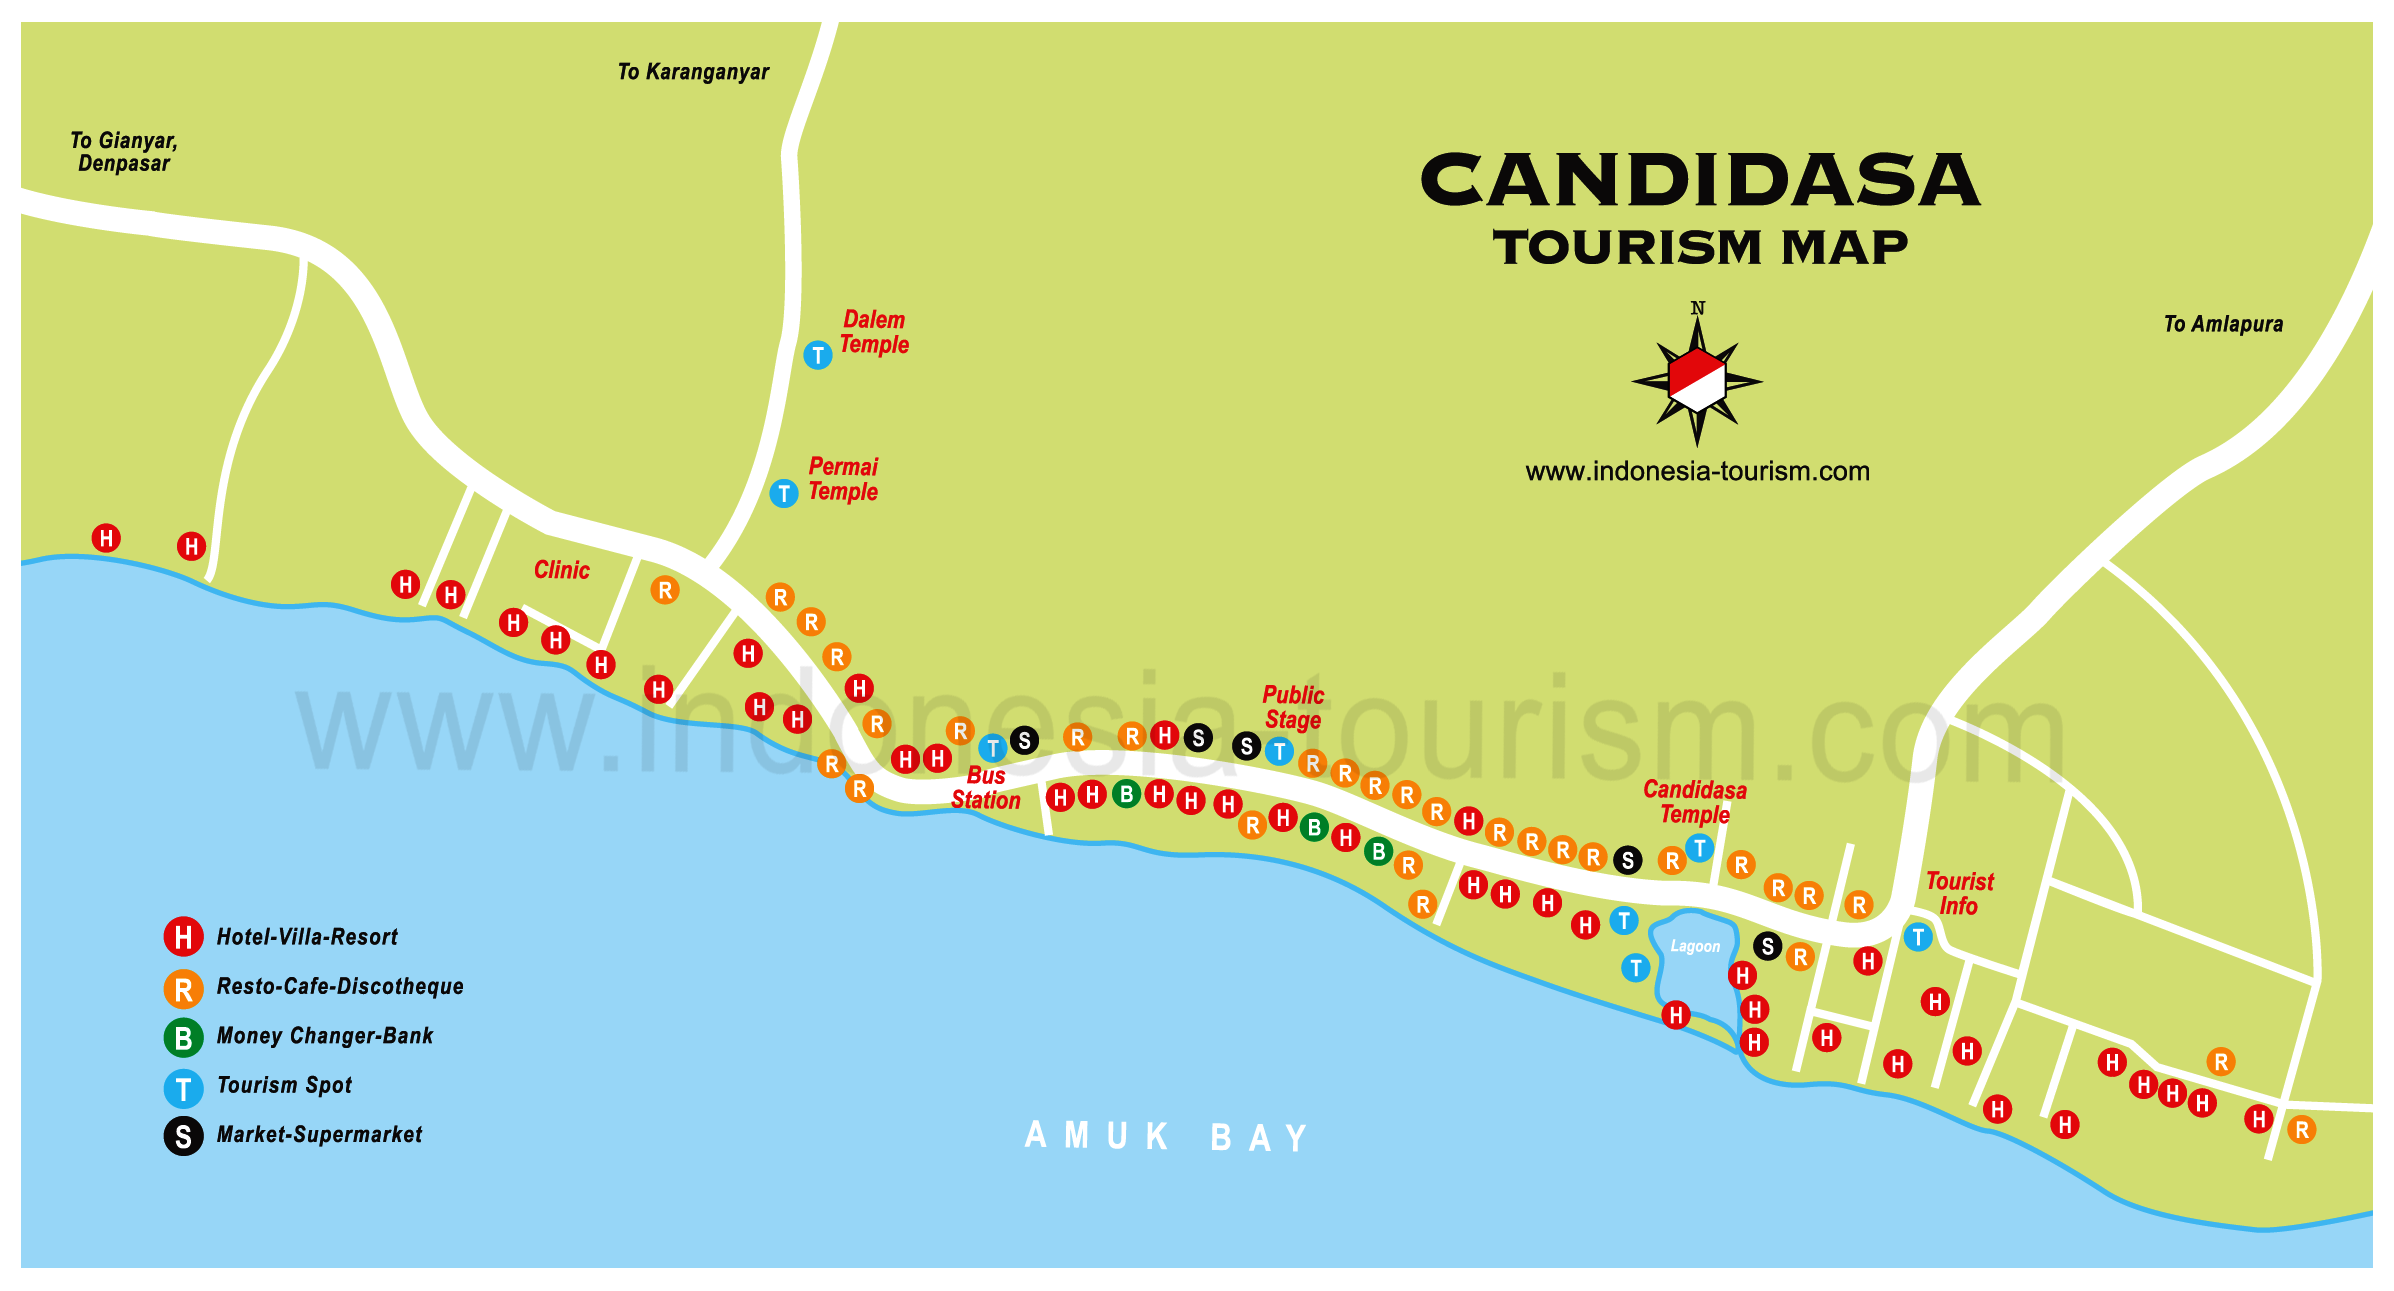 Detail Vacation Villa Candidasa Location Map for Tourists,Location Map of Candidasa Bali,Candidasa Accommodation destinations attractions hotels maps,Tirta Gangga water place, The lotus lagoon, Goa Lawah temple, White Sand Beach, Pantai Labuan Amok, Tenganan village with Bali Aga